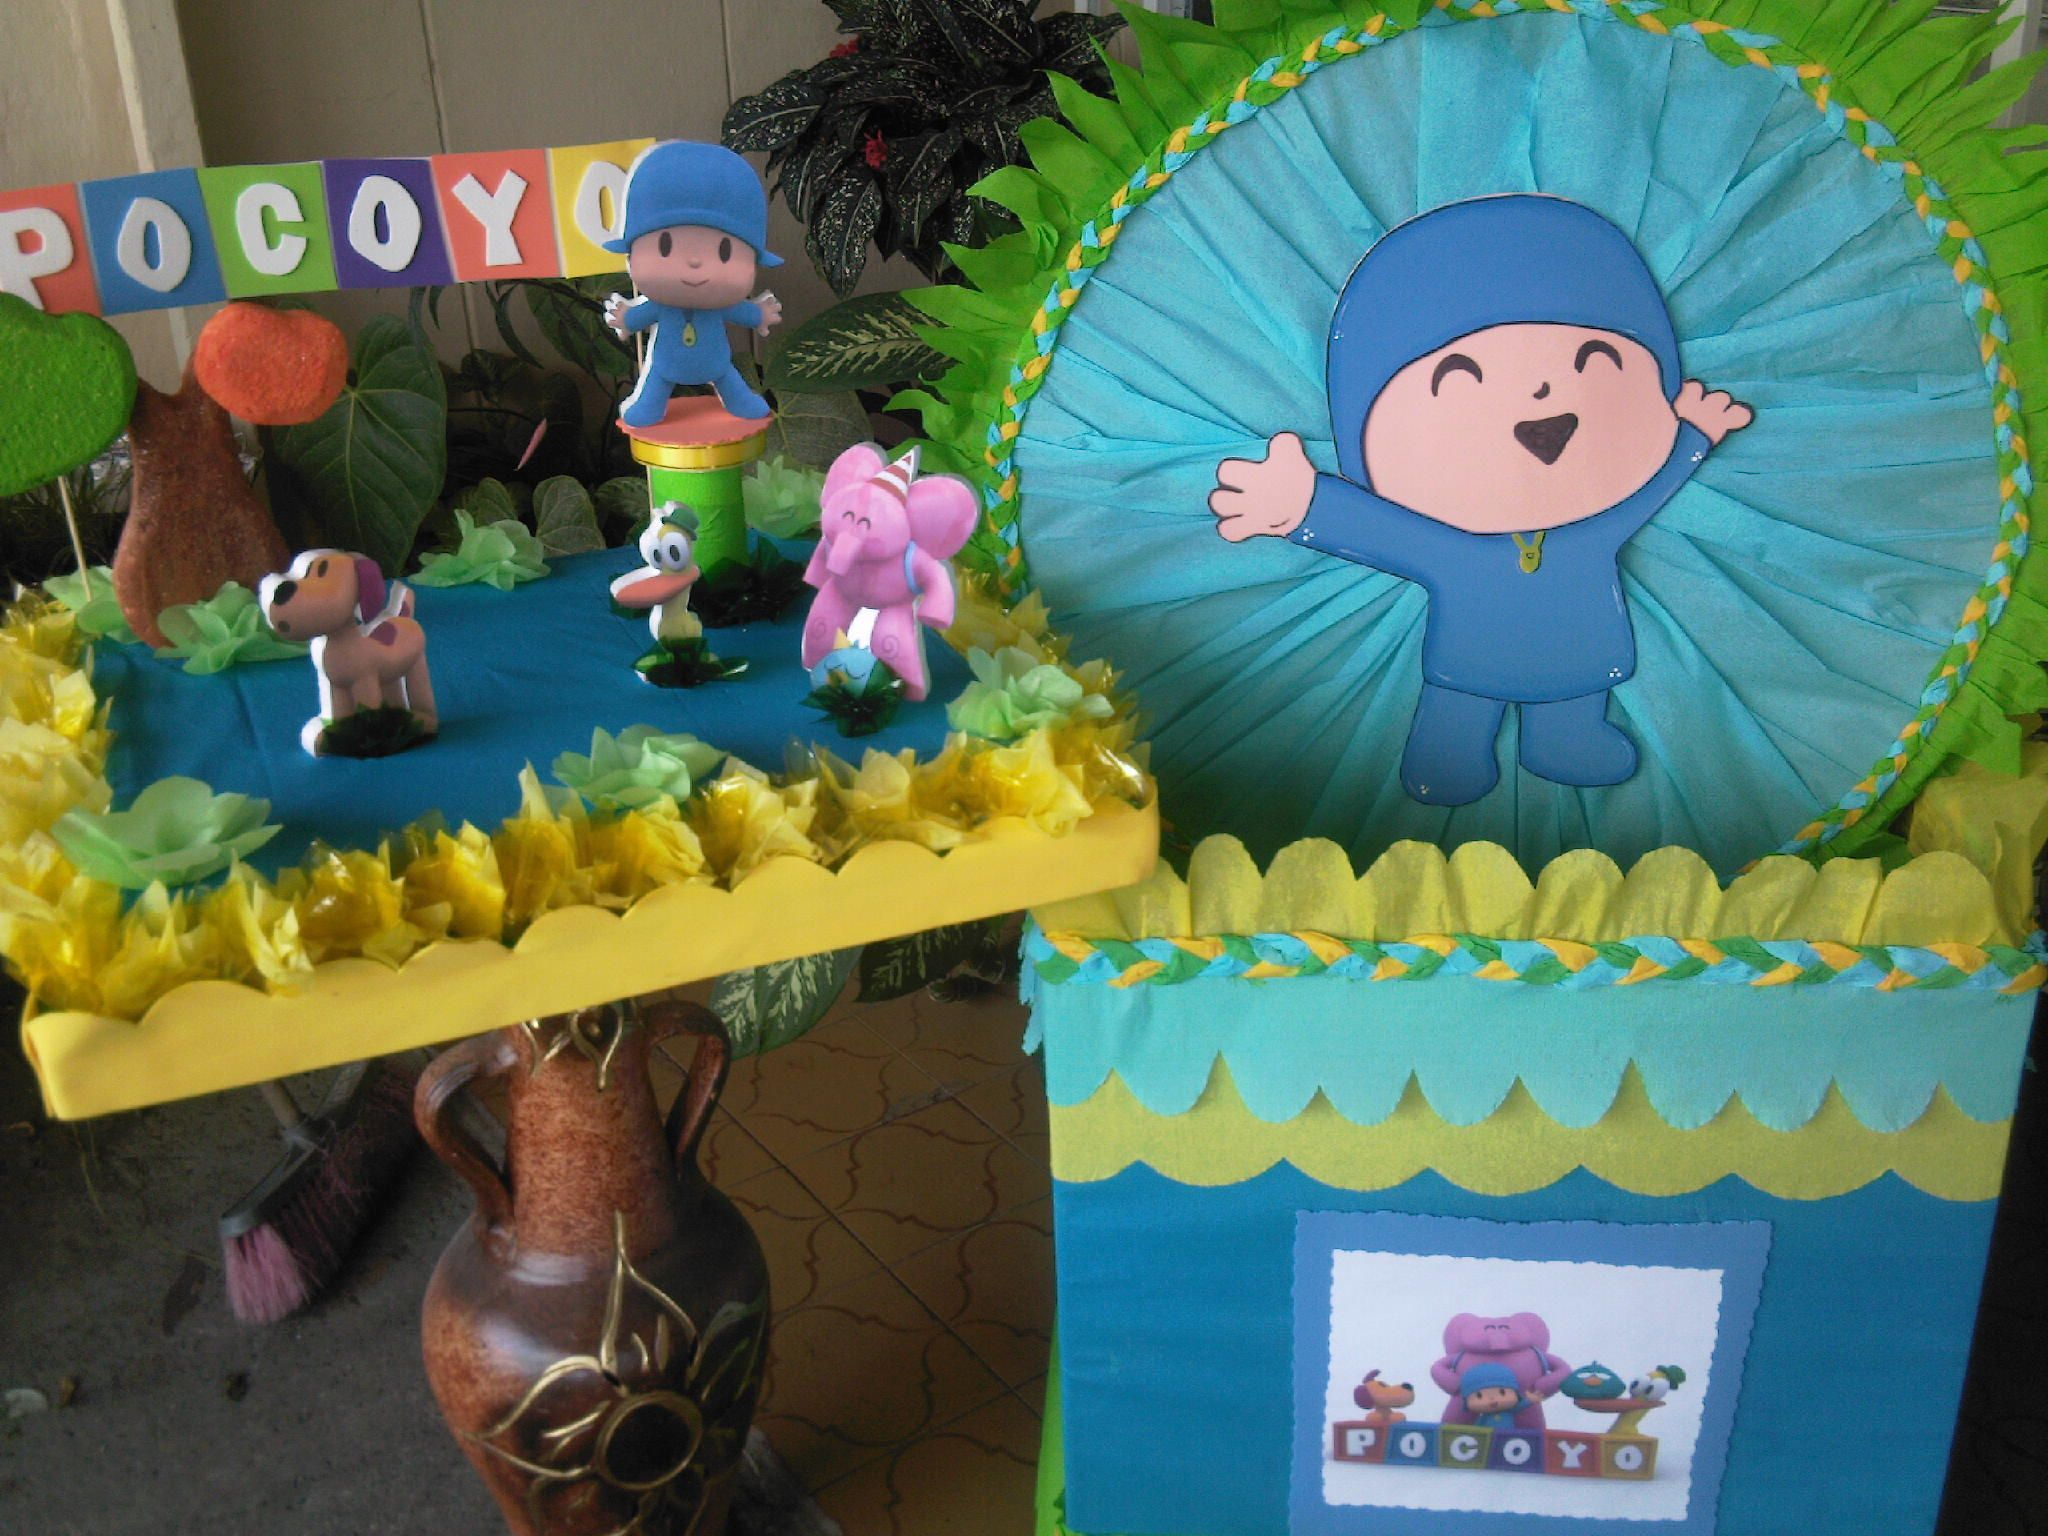 Pocoyo decorations fiesta pocoyo decoraci n imagui - Ideas decoracion fiestas ...